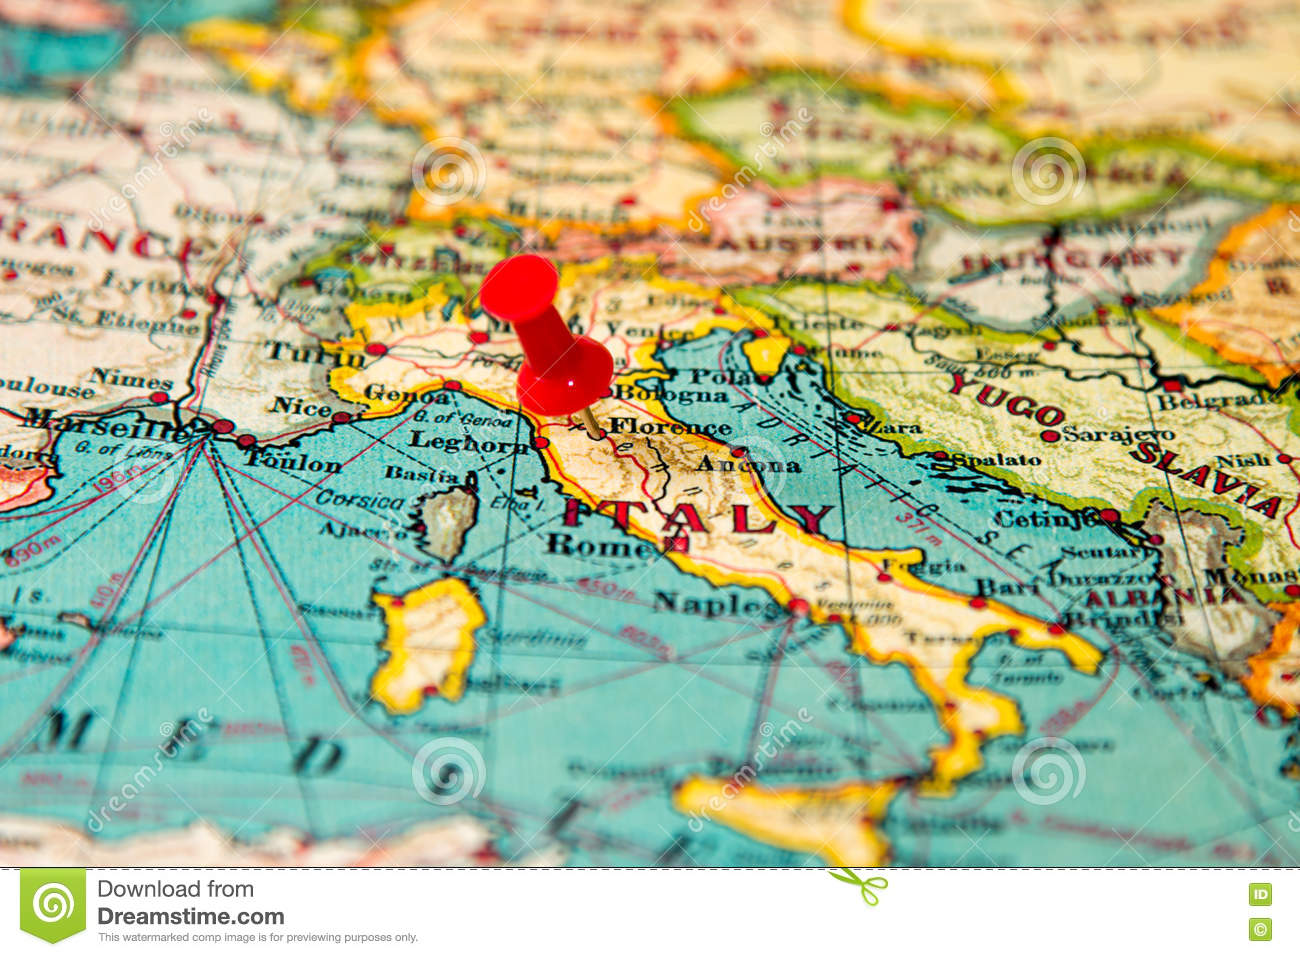 Florence, Italy Pinned On Vintage Map Of Europe Stock Photo - Image ...